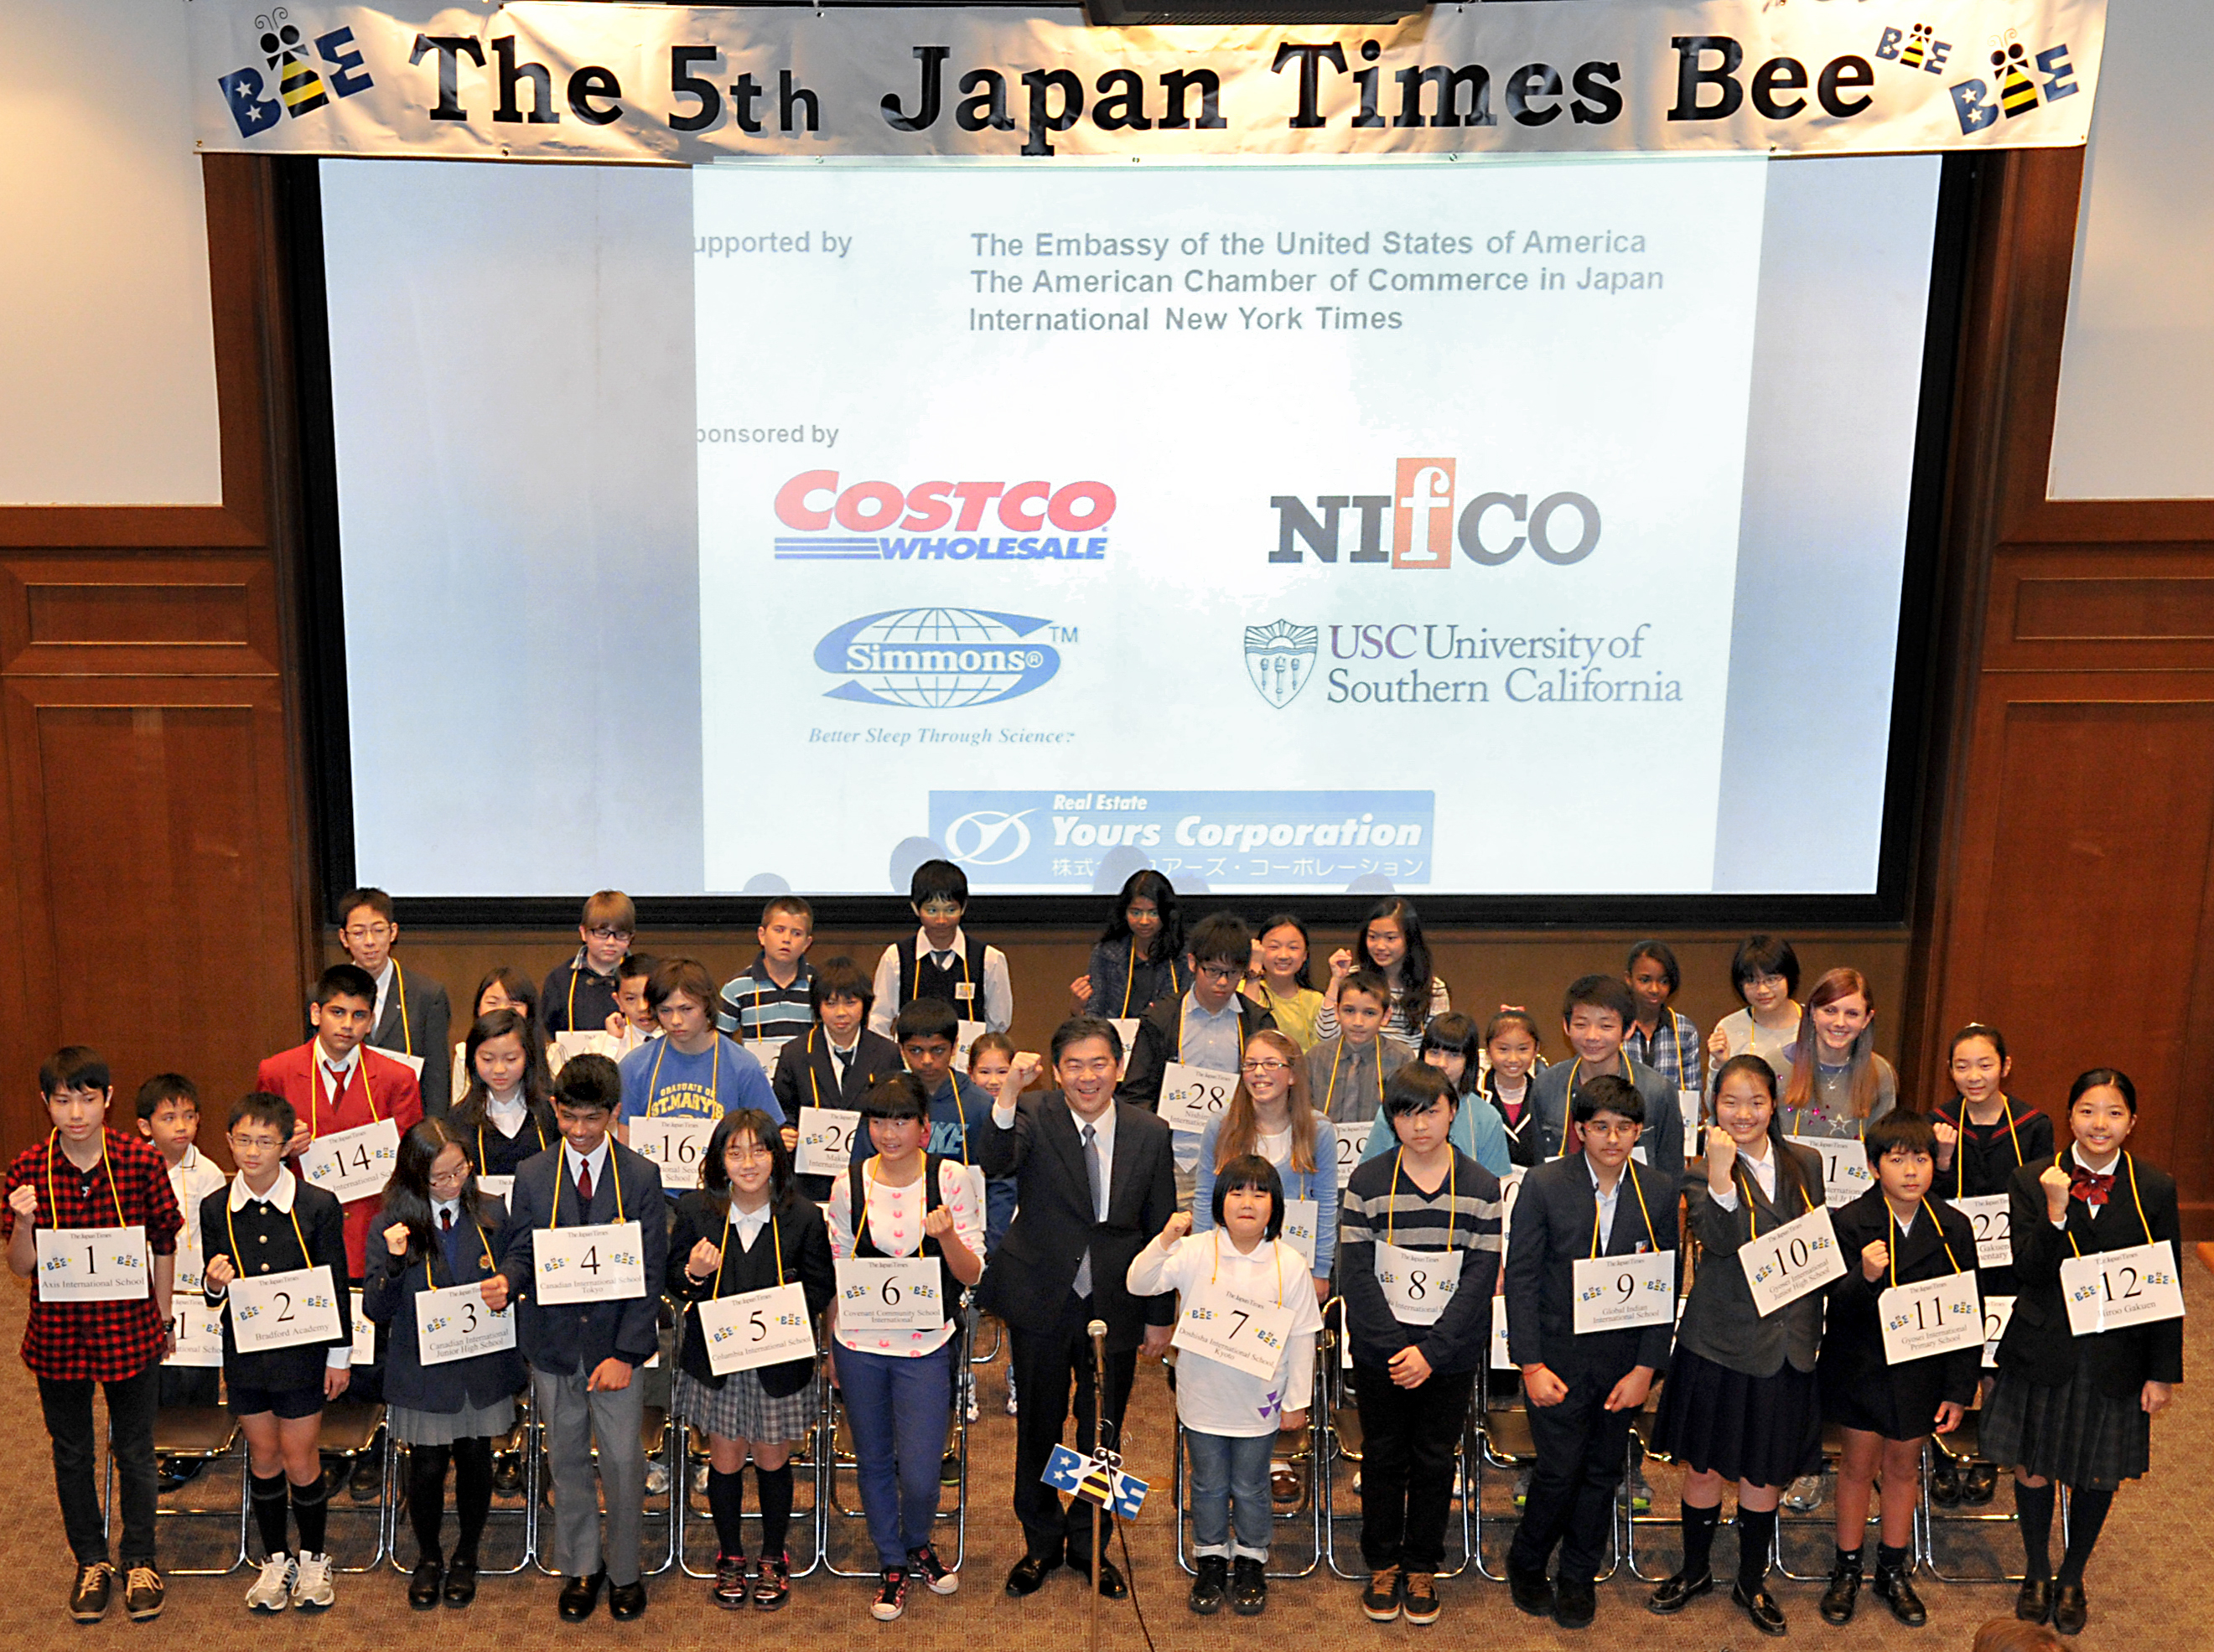 The 5th Japan Times Bee (March 22, 2014)